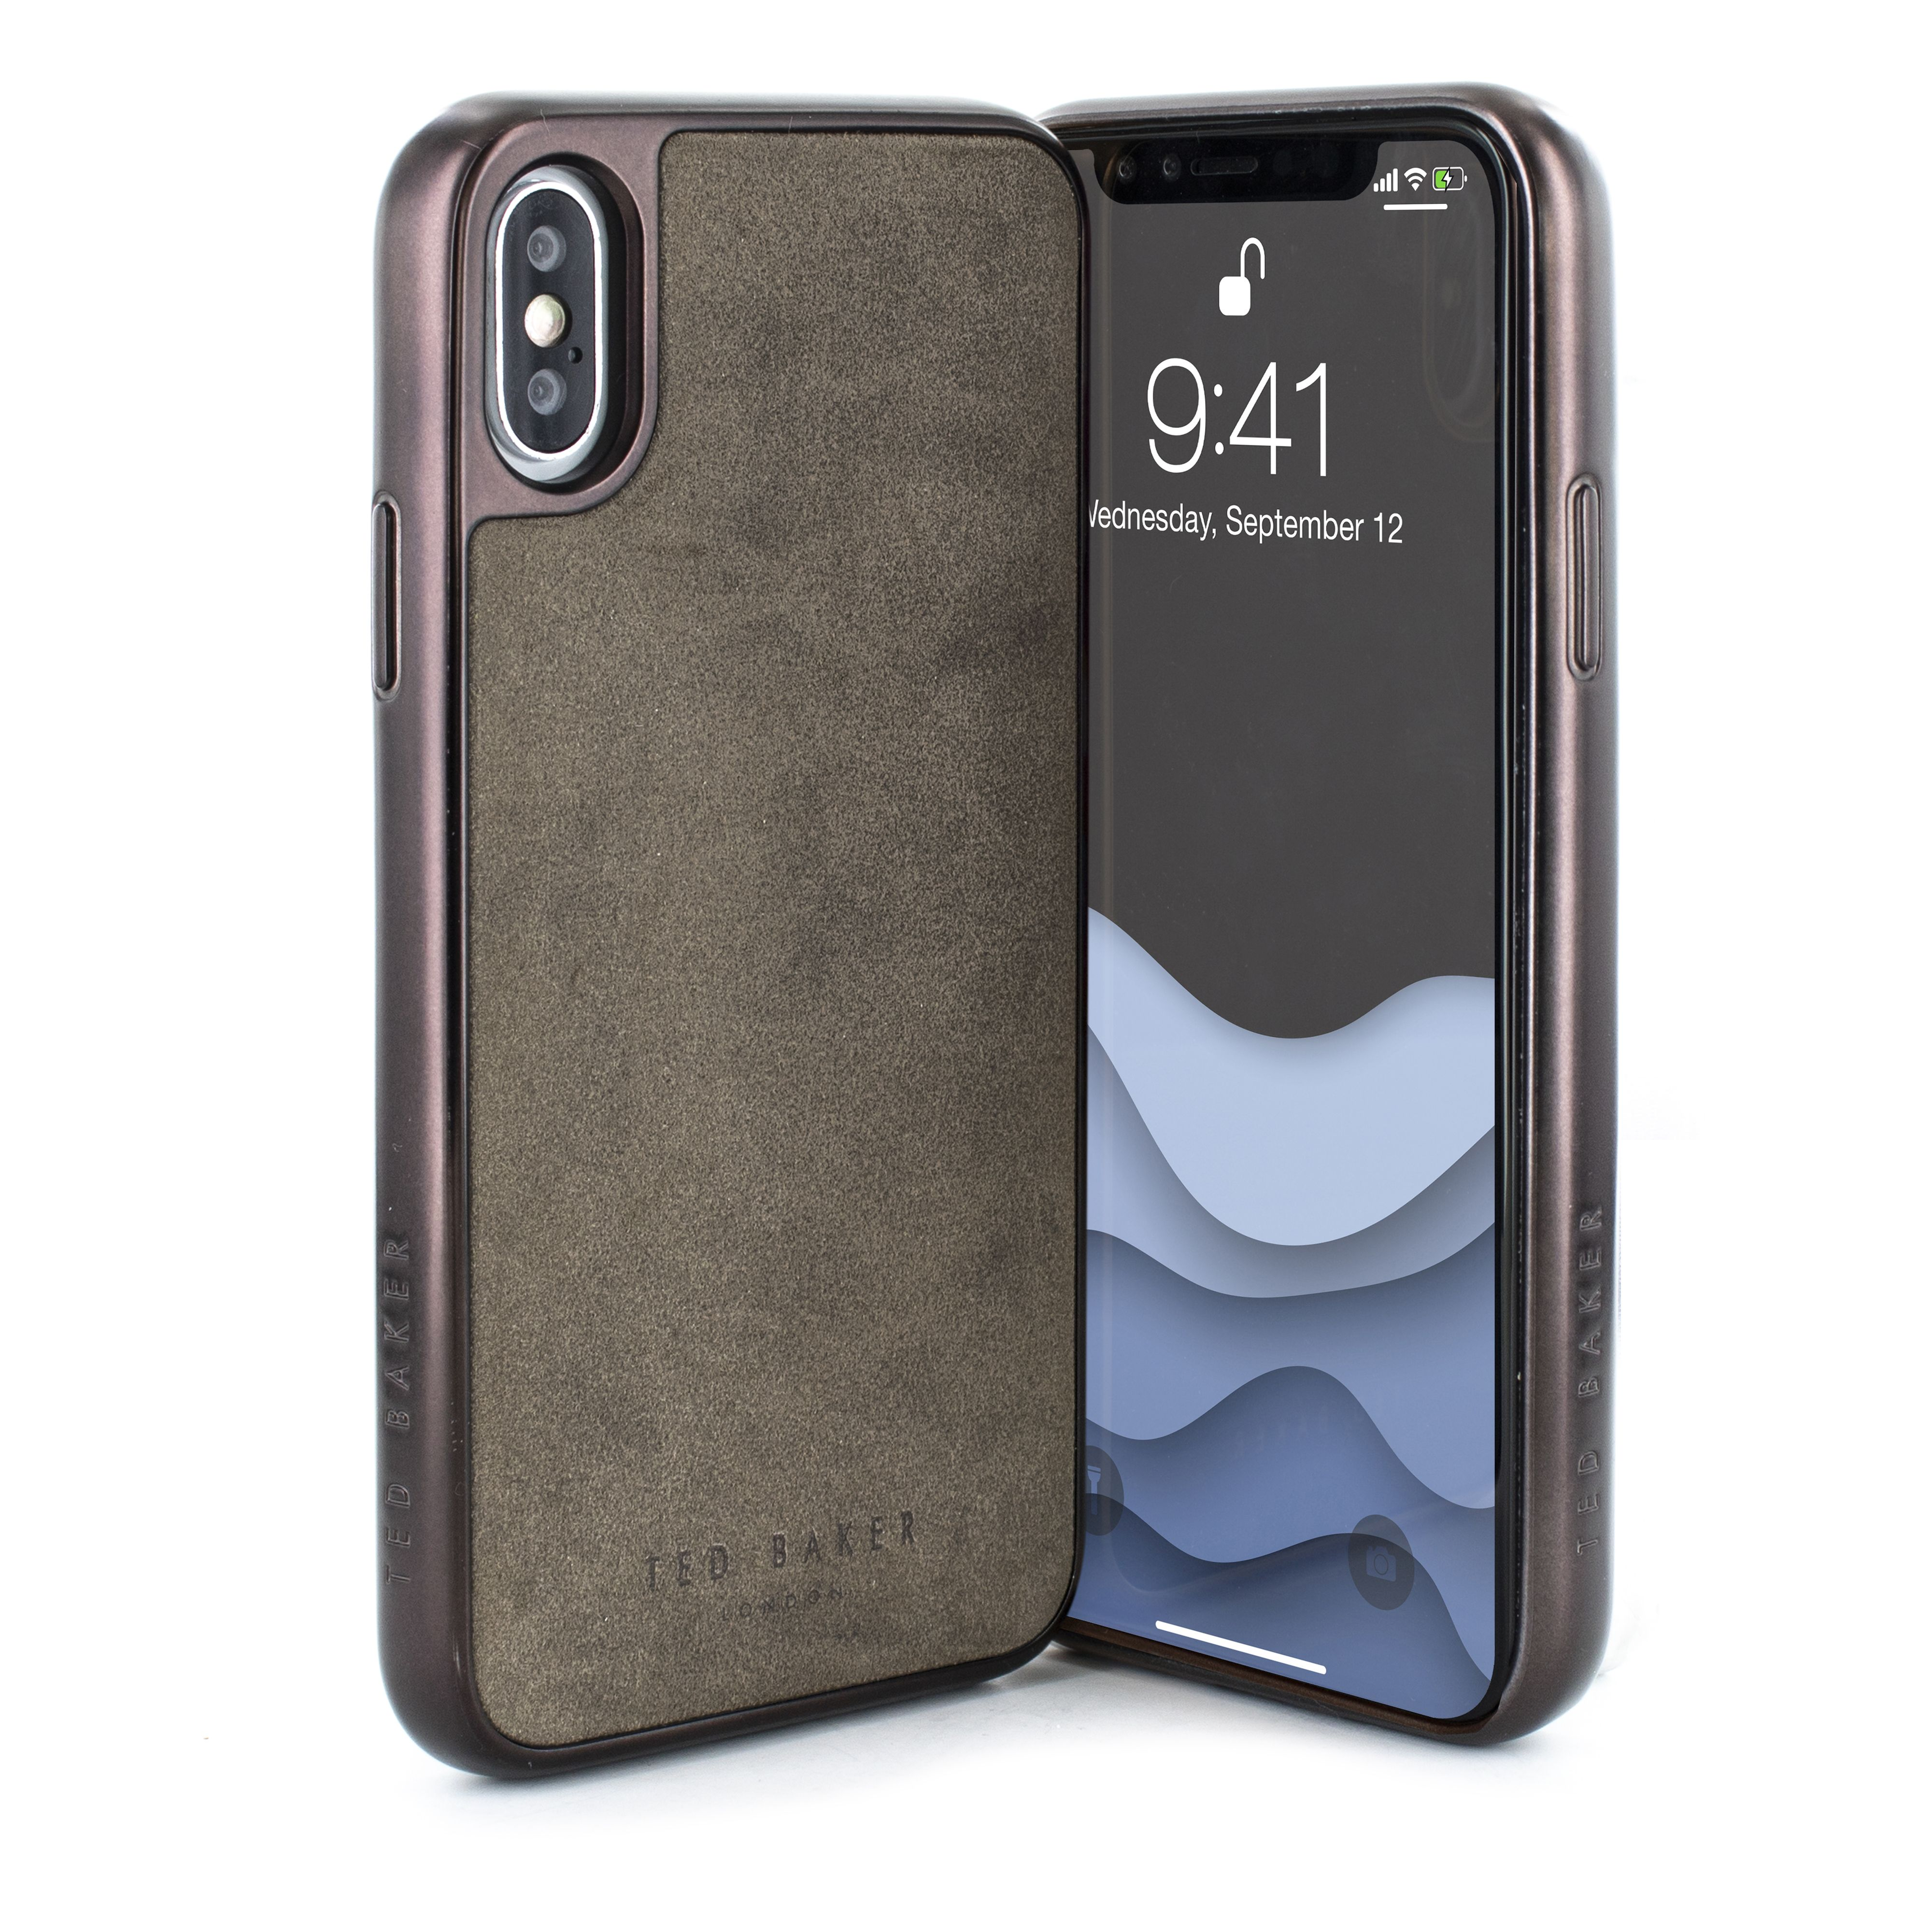 a5af41048 Ted Baker Connected Case for iPhone X XS - Hartzz. Smart ...